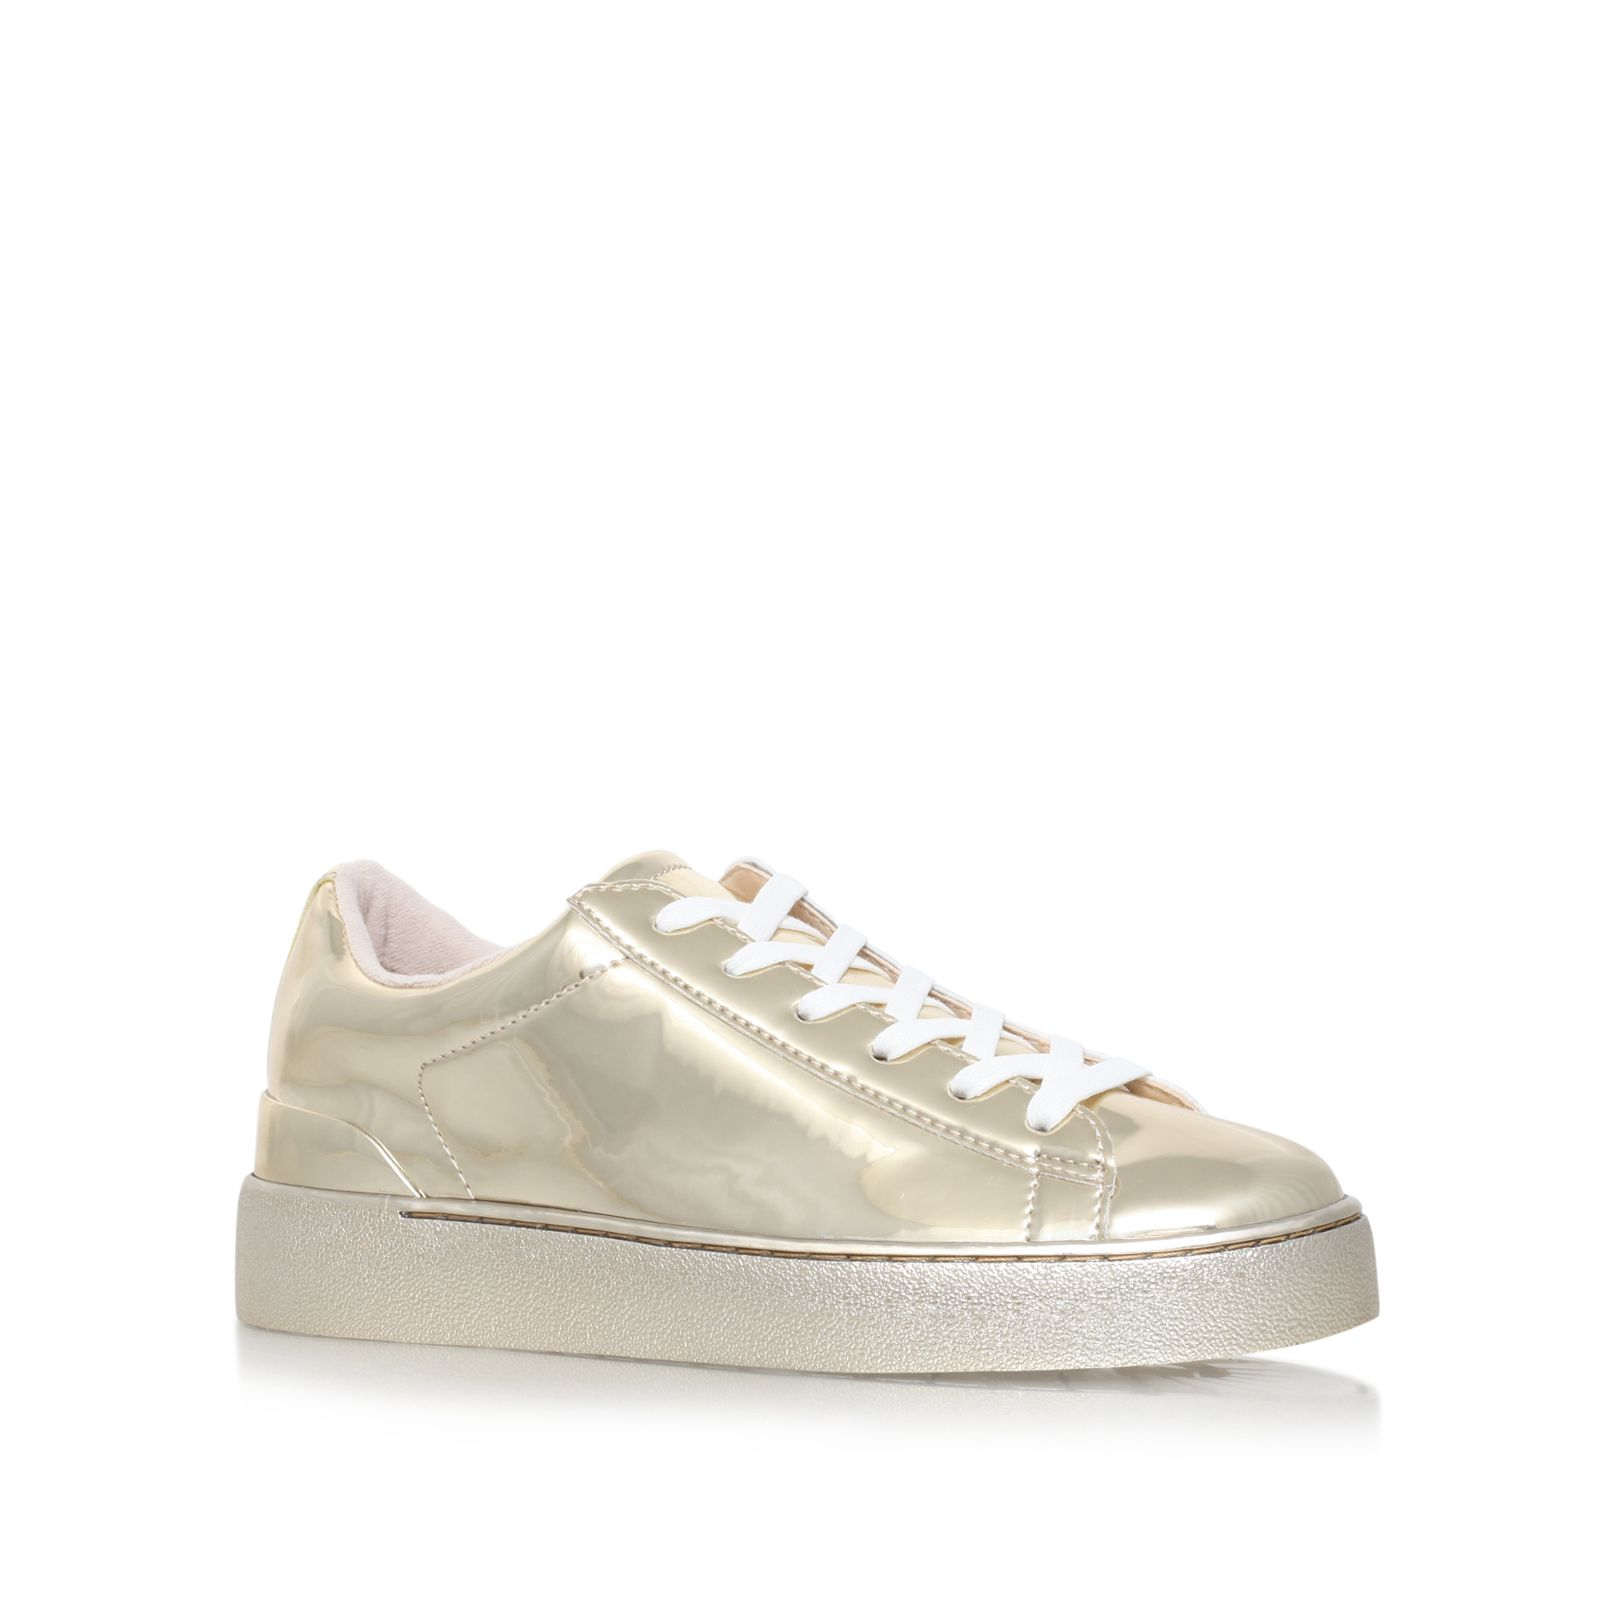 Nine West Nine West Palyla3 flat lace up sneakers, Gold